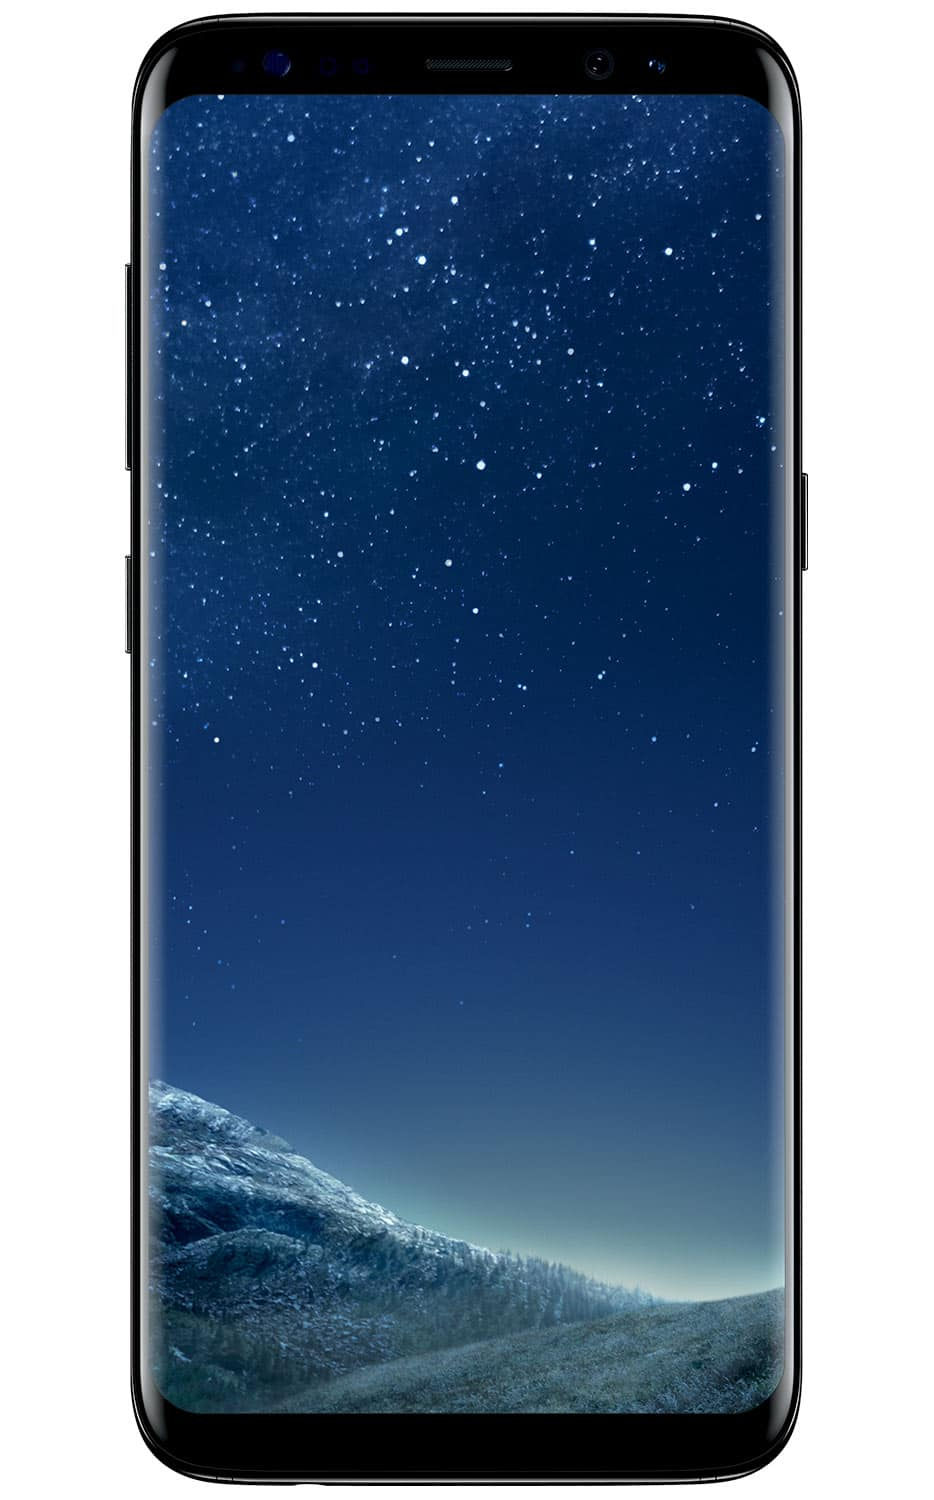 rumor t mobile samsung galaxy s8 bogo. Black Bedroom Furniture Sets. Home Design Ideas